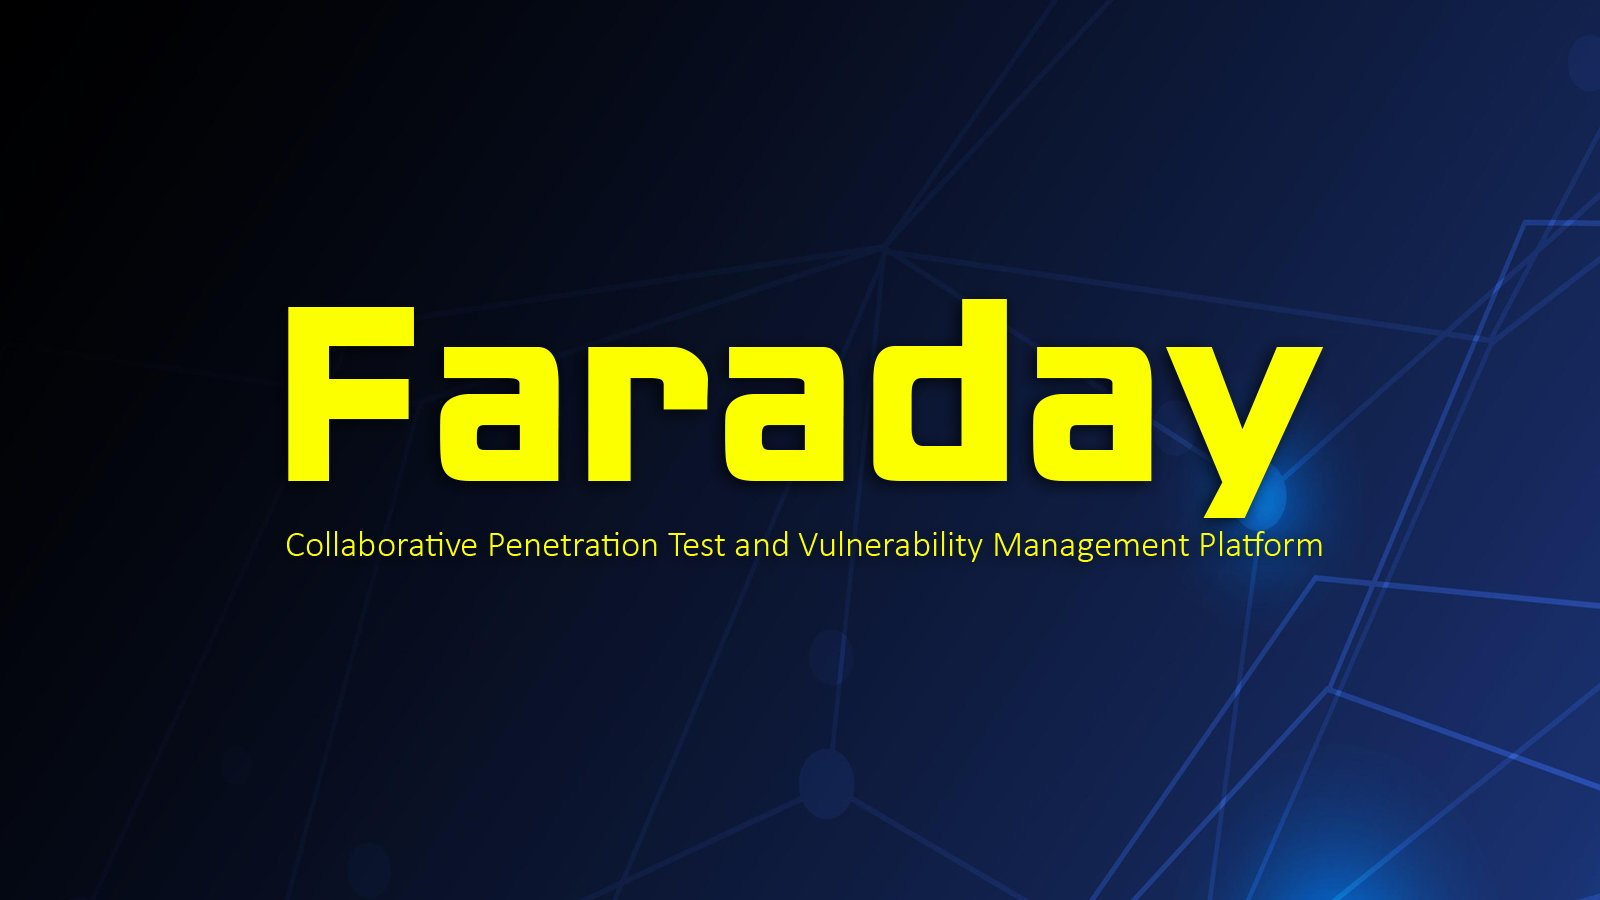 Faraday Penetration Testing platform and vulnerabilities